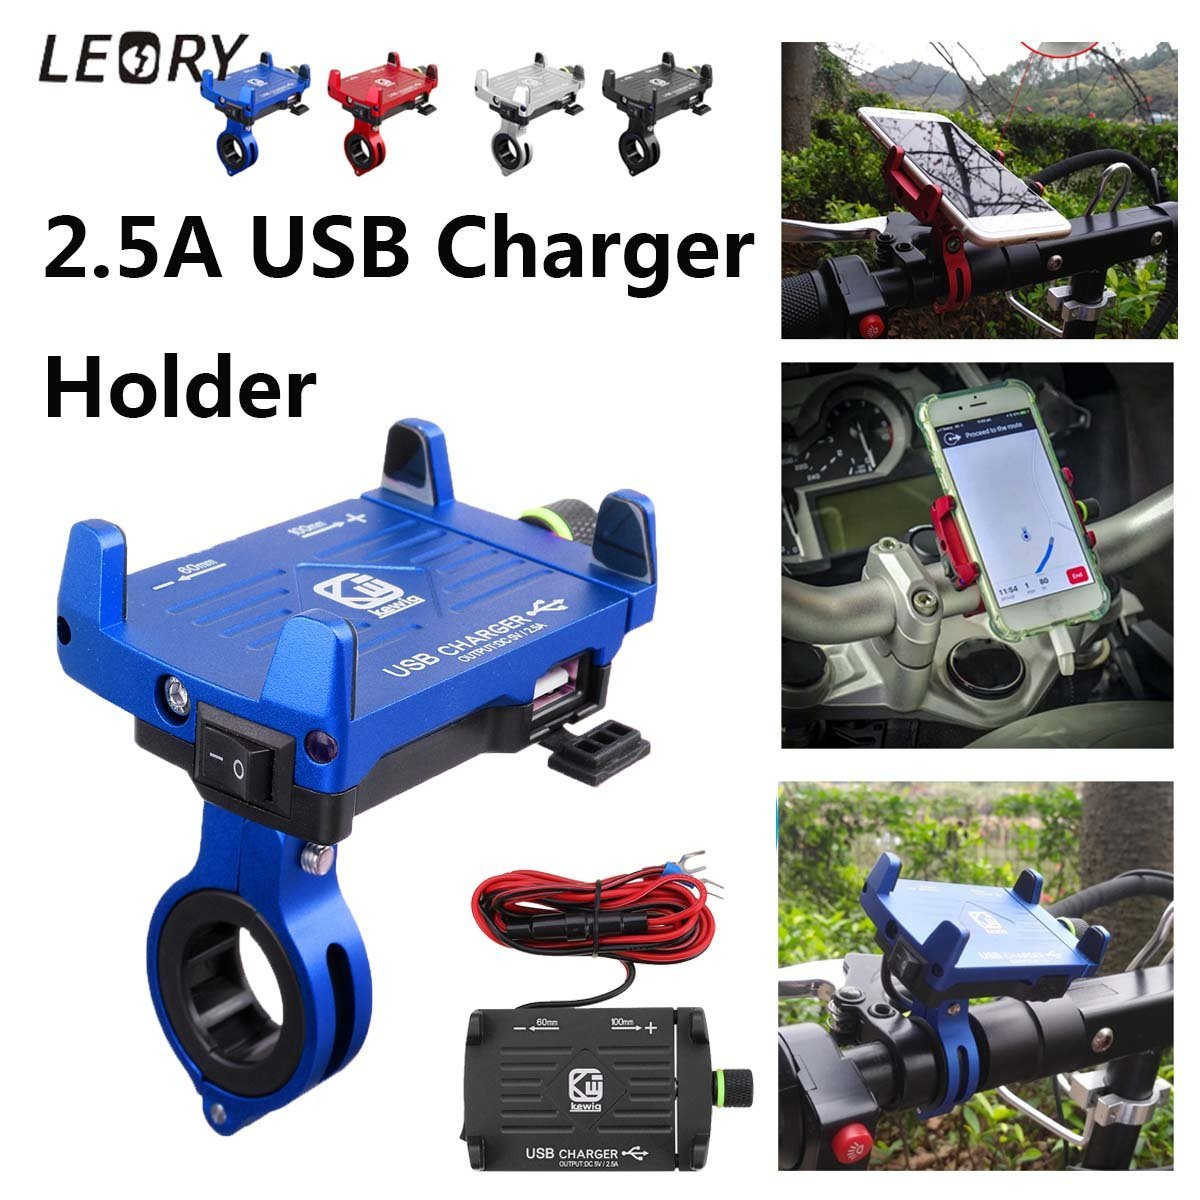 Universal Aluminum Alloy Motorcycle Mount USB Charger Cell Phone Holder for iPhone USB Fast Charging - PropelGear